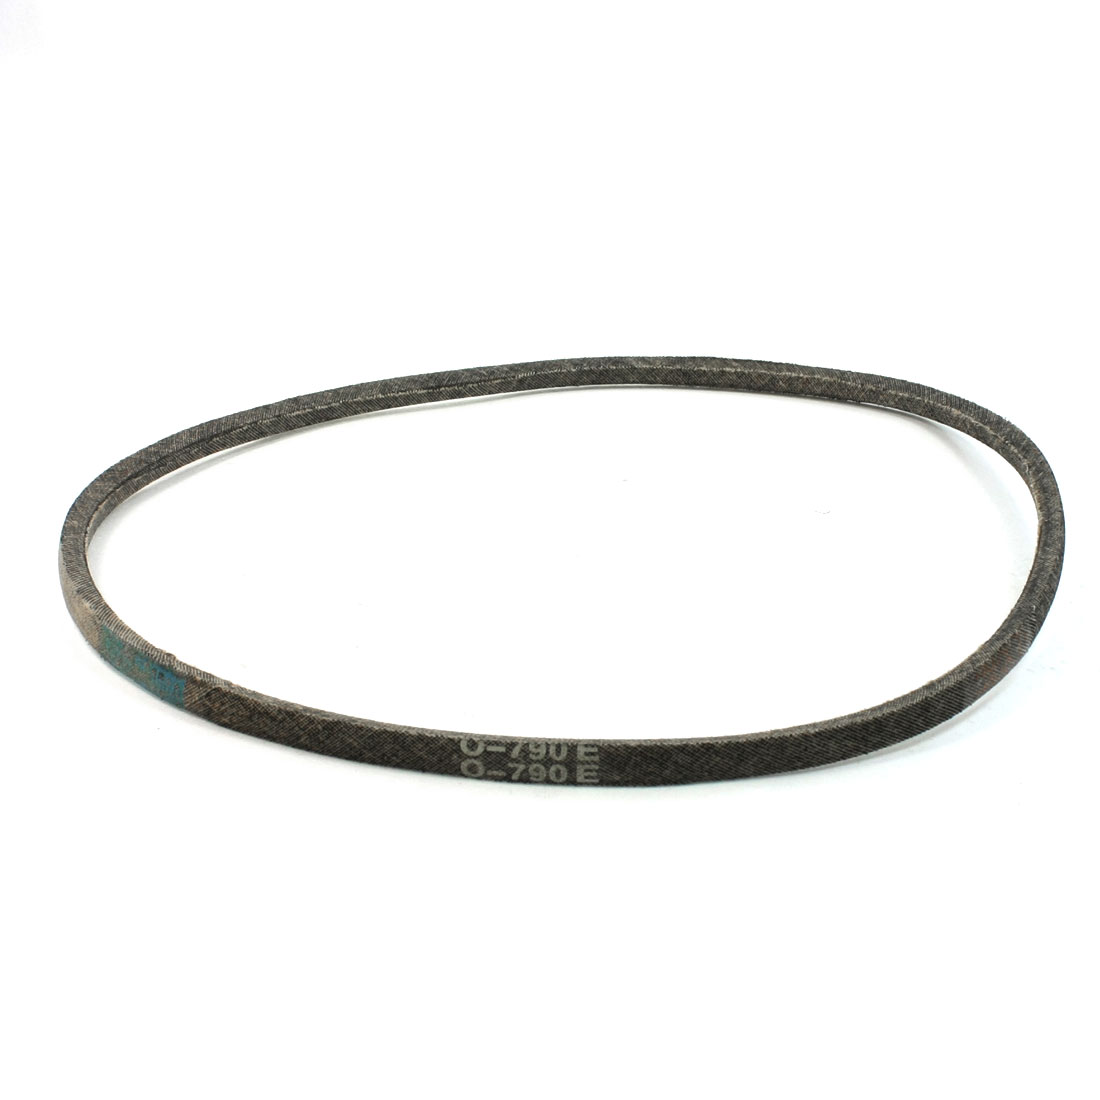 Washing Machine Motor Belt Replacement 10mm Outer Width 79cm Inner Girth